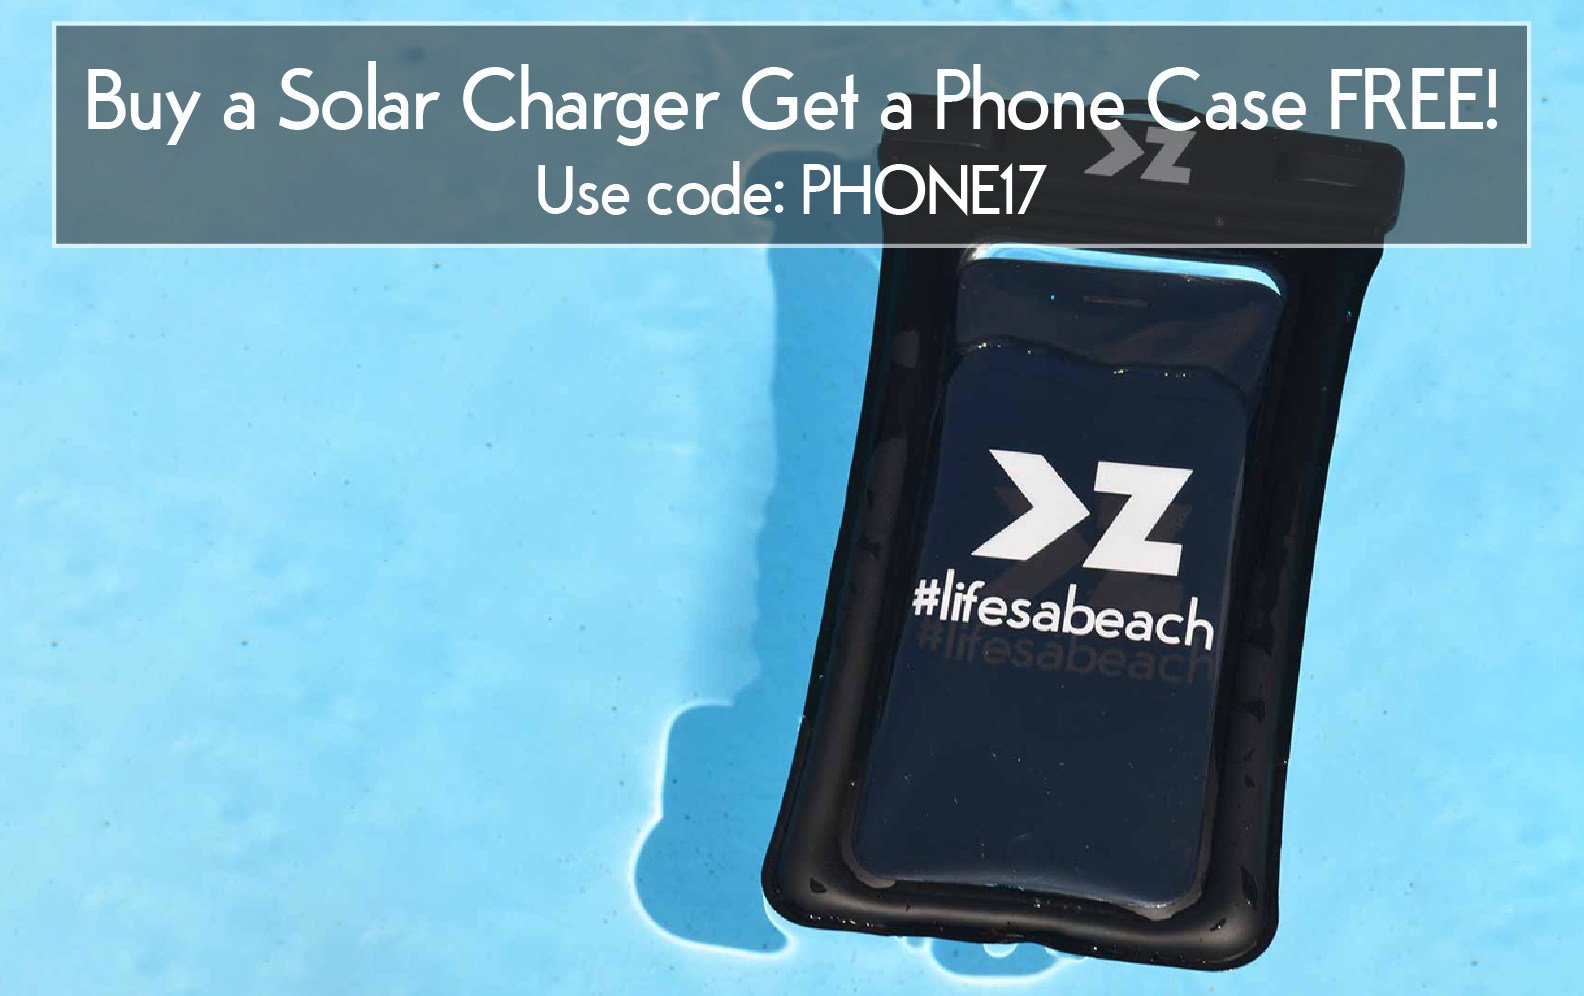 Charger + Phone Case Offer